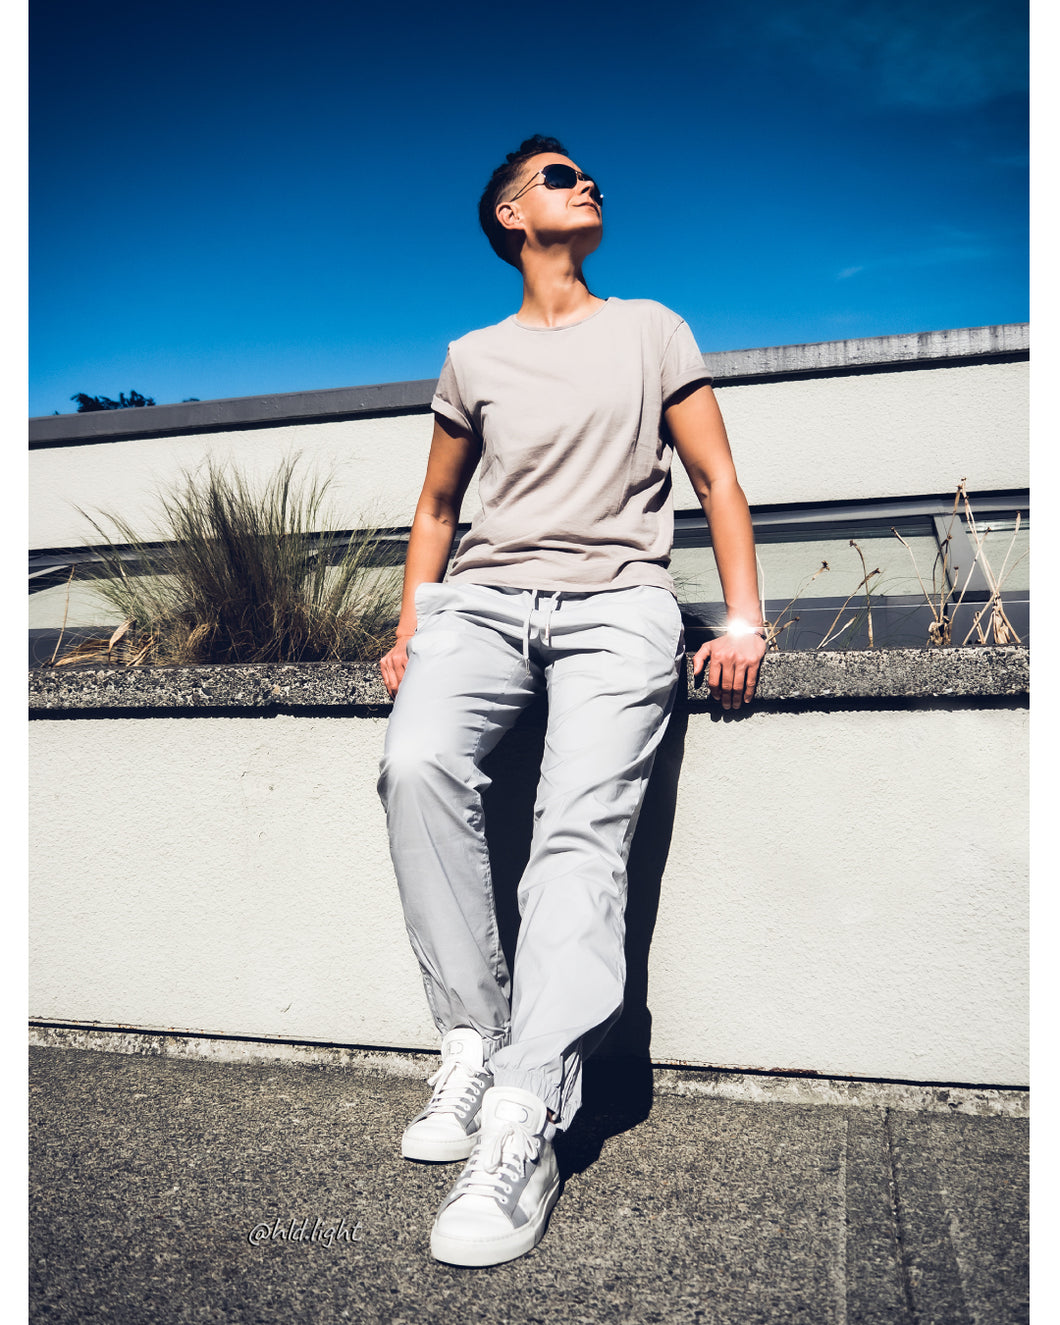 Tomboy-Style-Short-Hair-Fade-Khaki-T-shirt-Light-Grey-Joggers-White-Sneakers-Silver-Bracelet-Gender-Neutral-Androgynous-Summer-Fashion